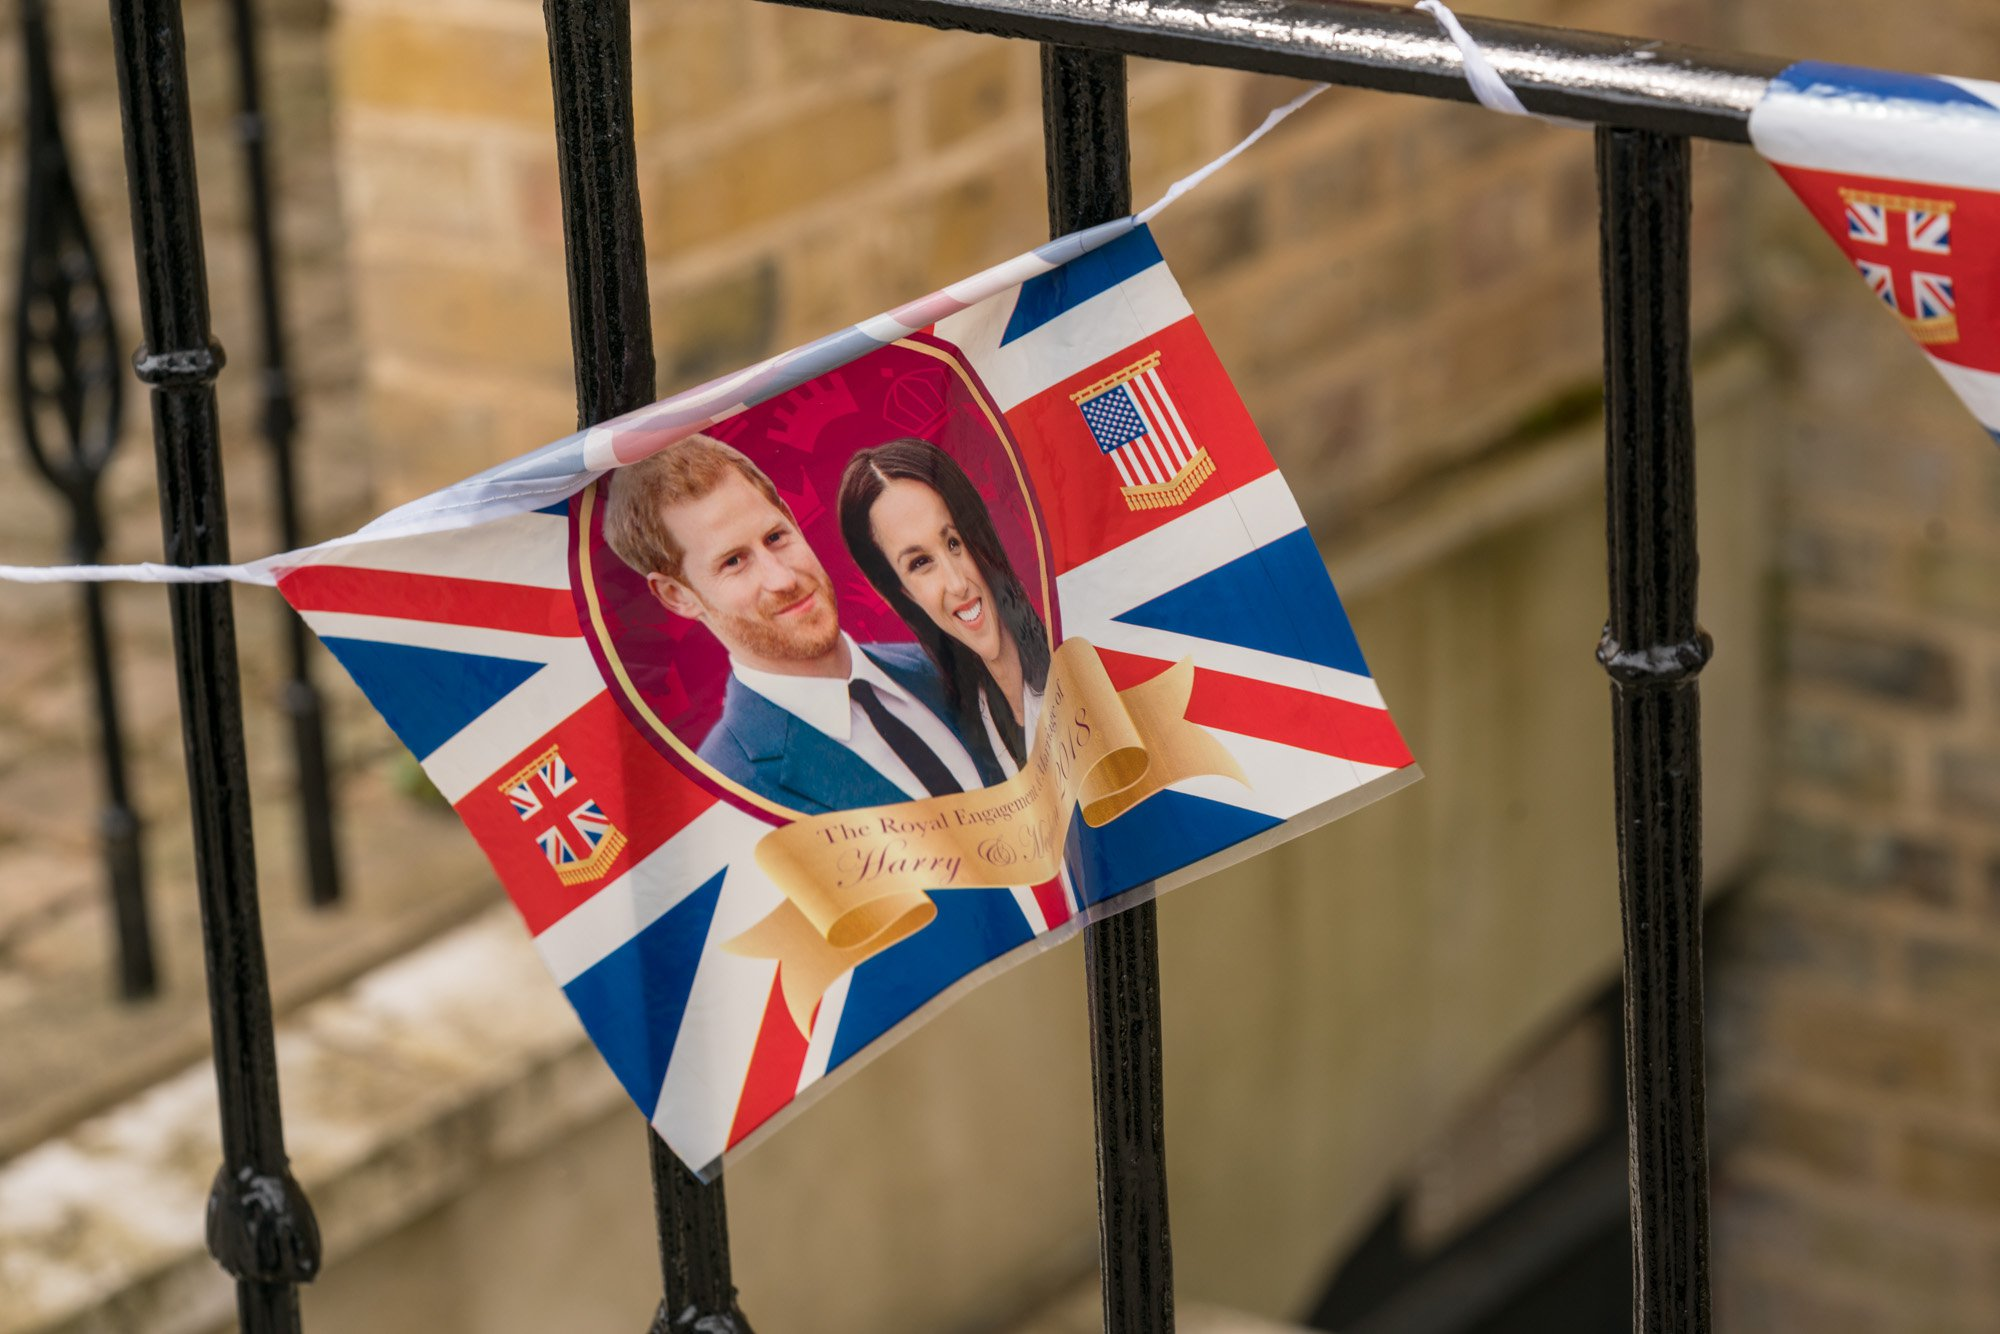 Royal wedding memes, Harry and Meghan printable masks, bunting and other party supplies and ideas to celebrate